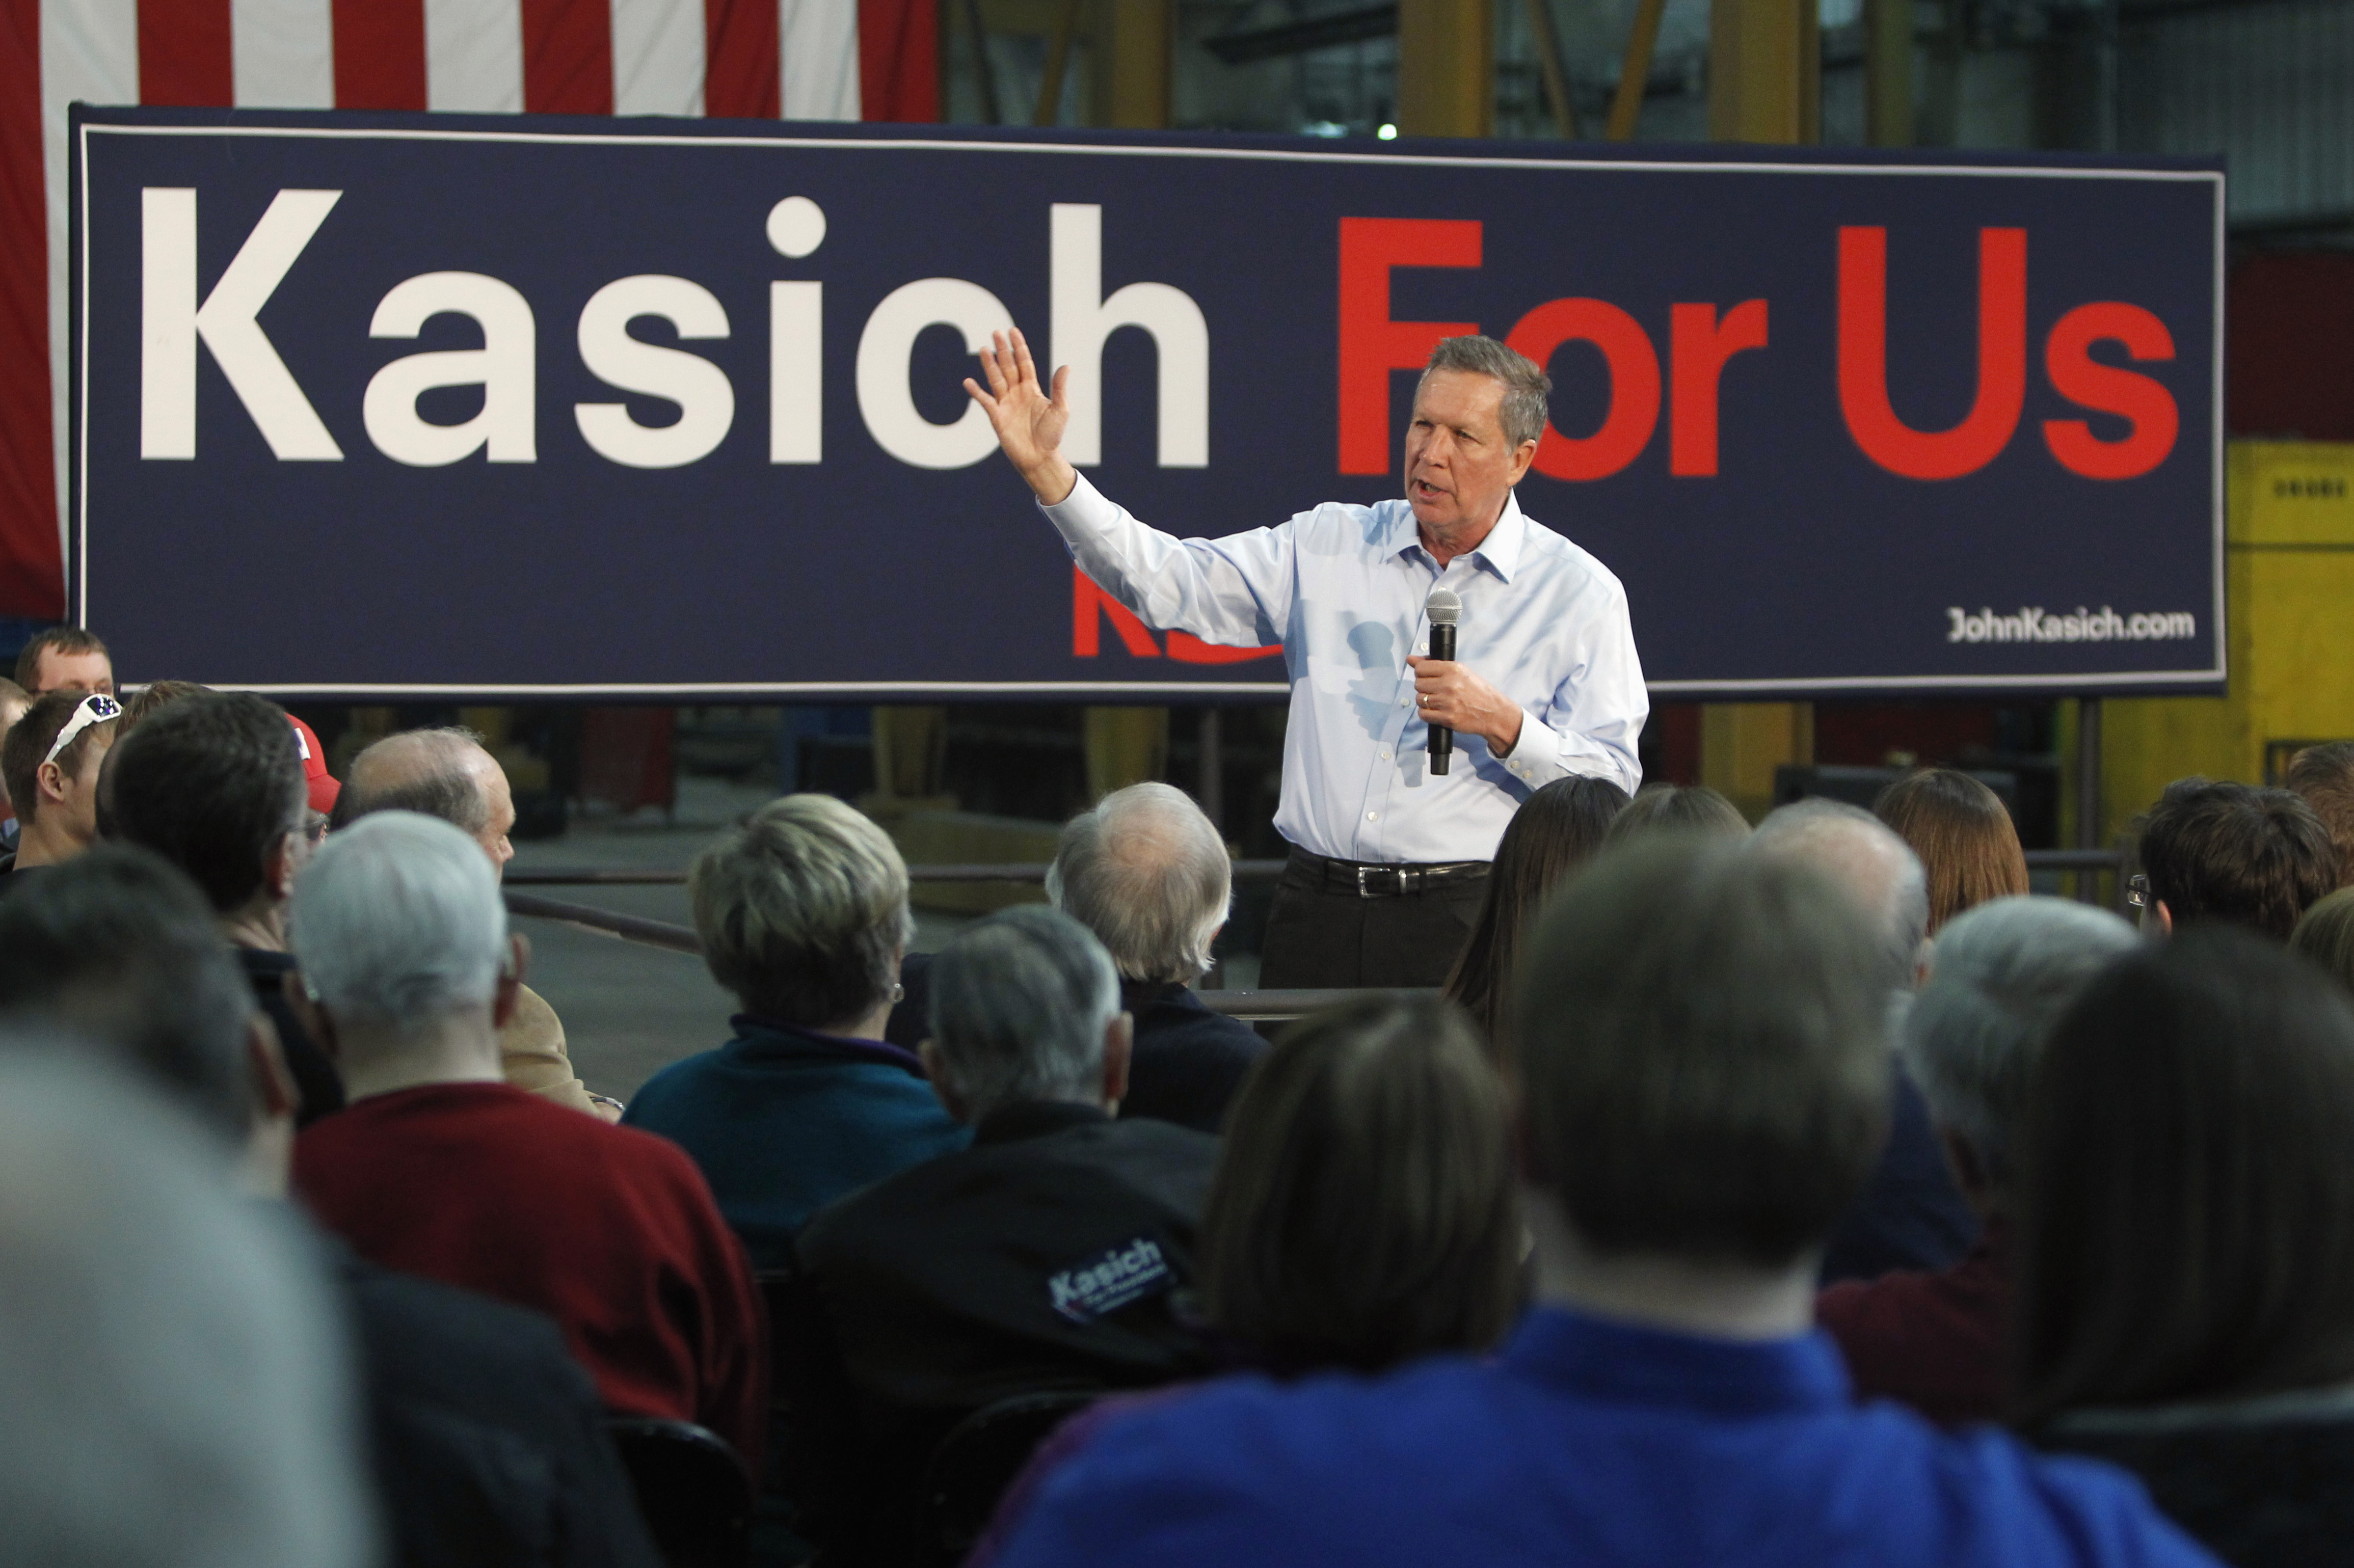 Republican presidential candidate, Ohio Gov. John Kasich speaks at a town hall meeting at Weldall Manufacturing in Waukesha, Wisconsin, March 29, 2016.